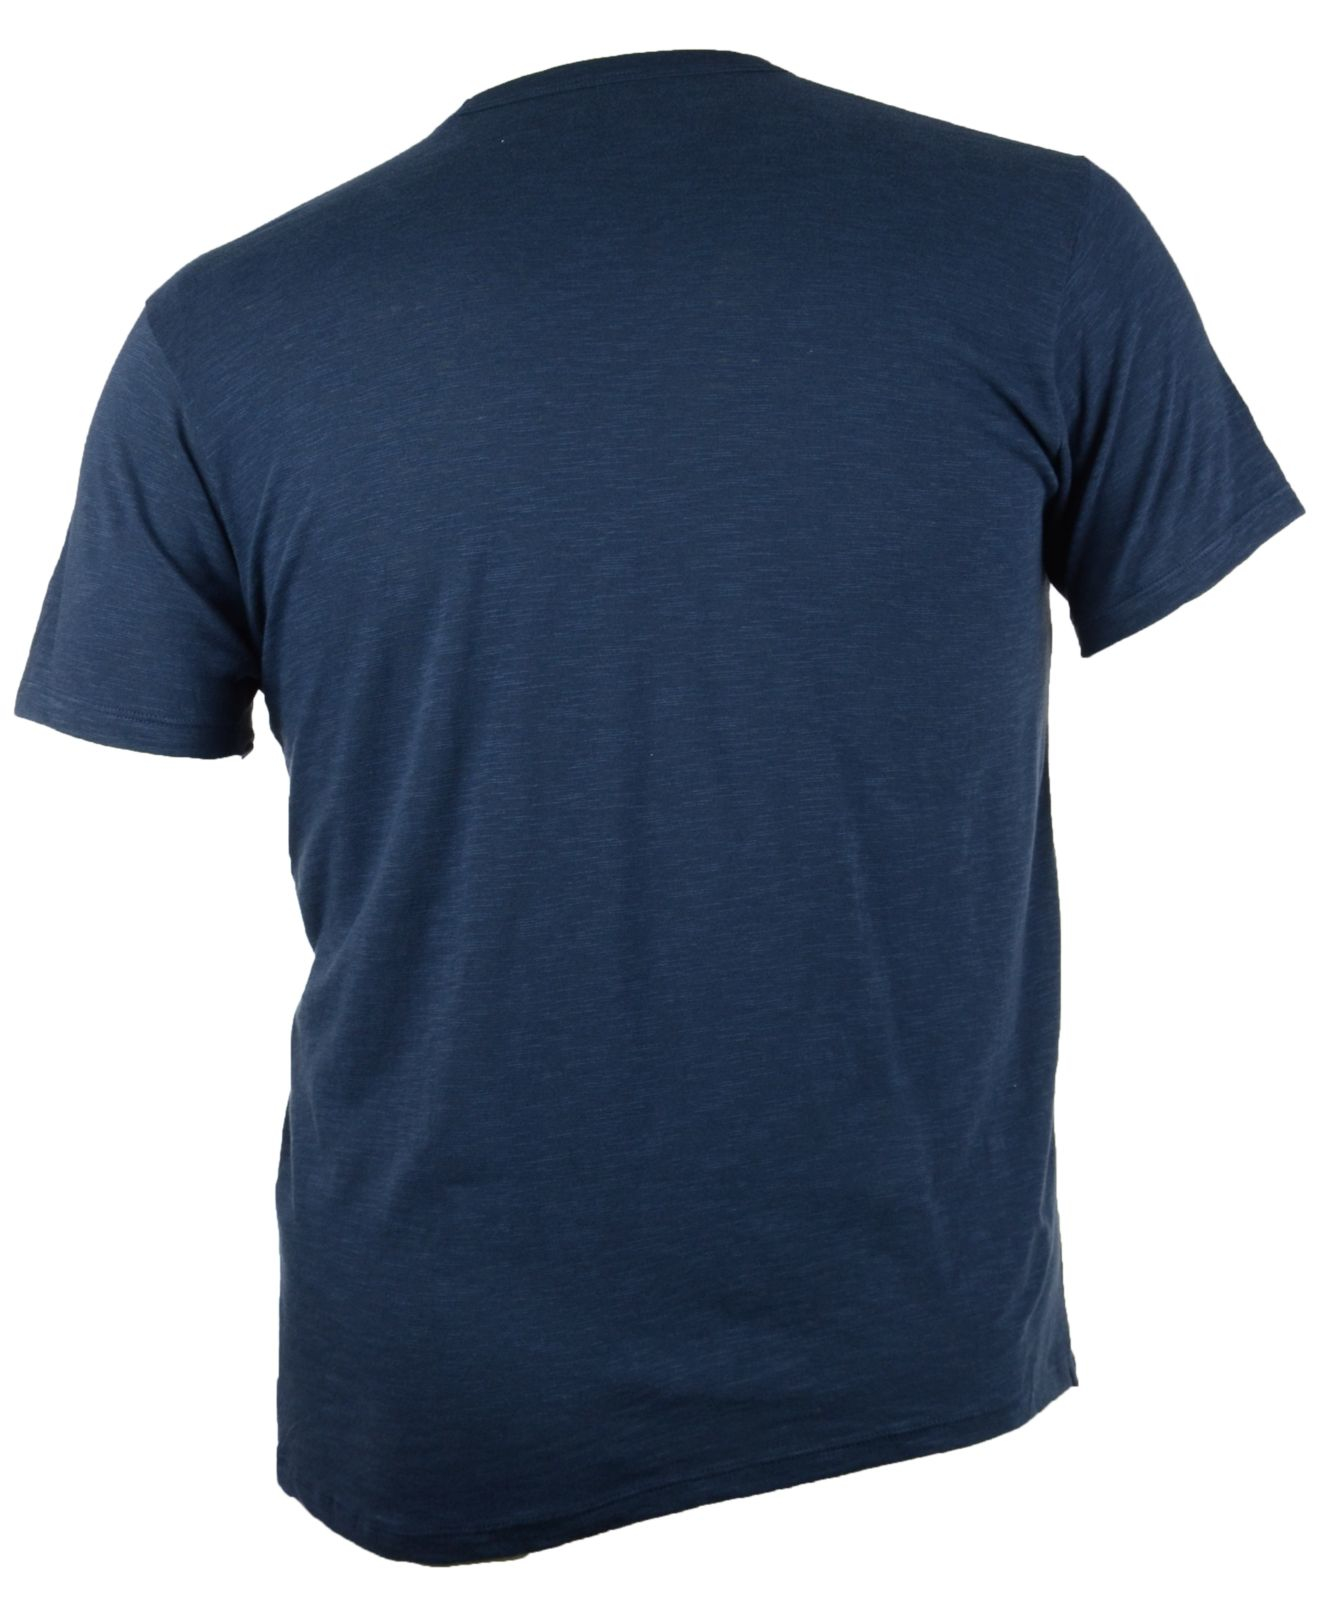 San Diego Chargers Clothing: 47 Brand Men's San Diego Chargers Logo Scrum T